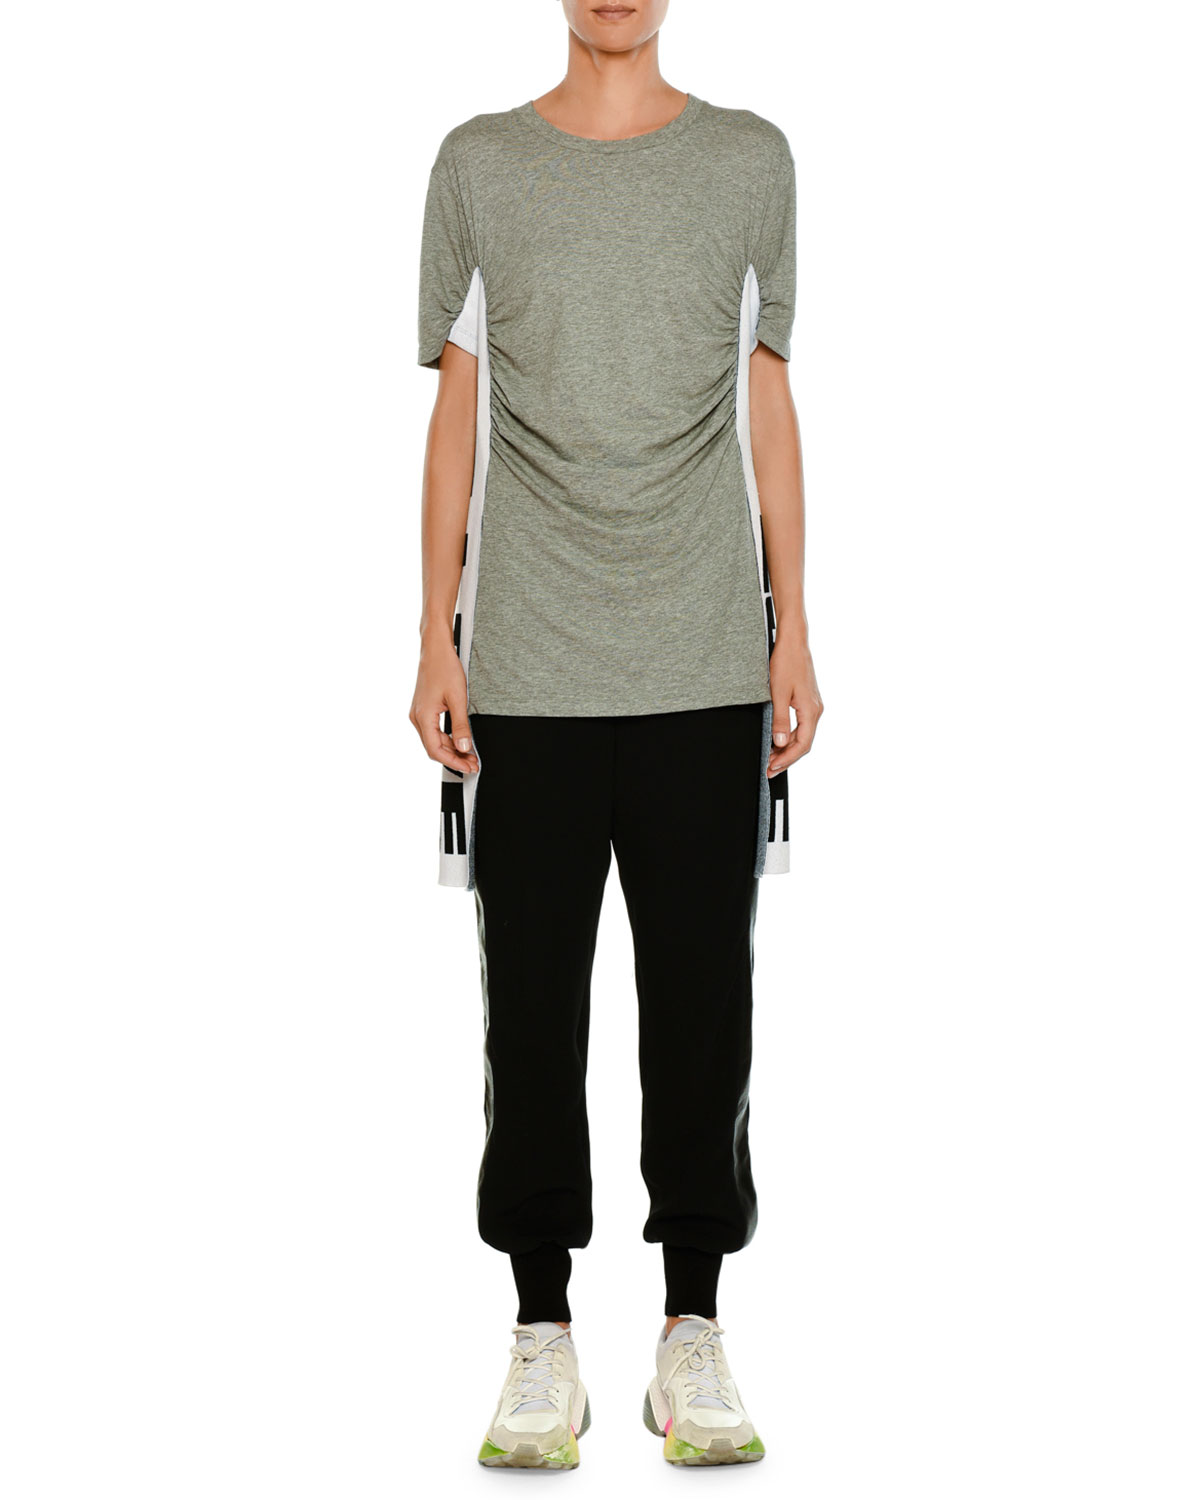 Pull-On Jogger-Style Pants with Leather Side Stripe